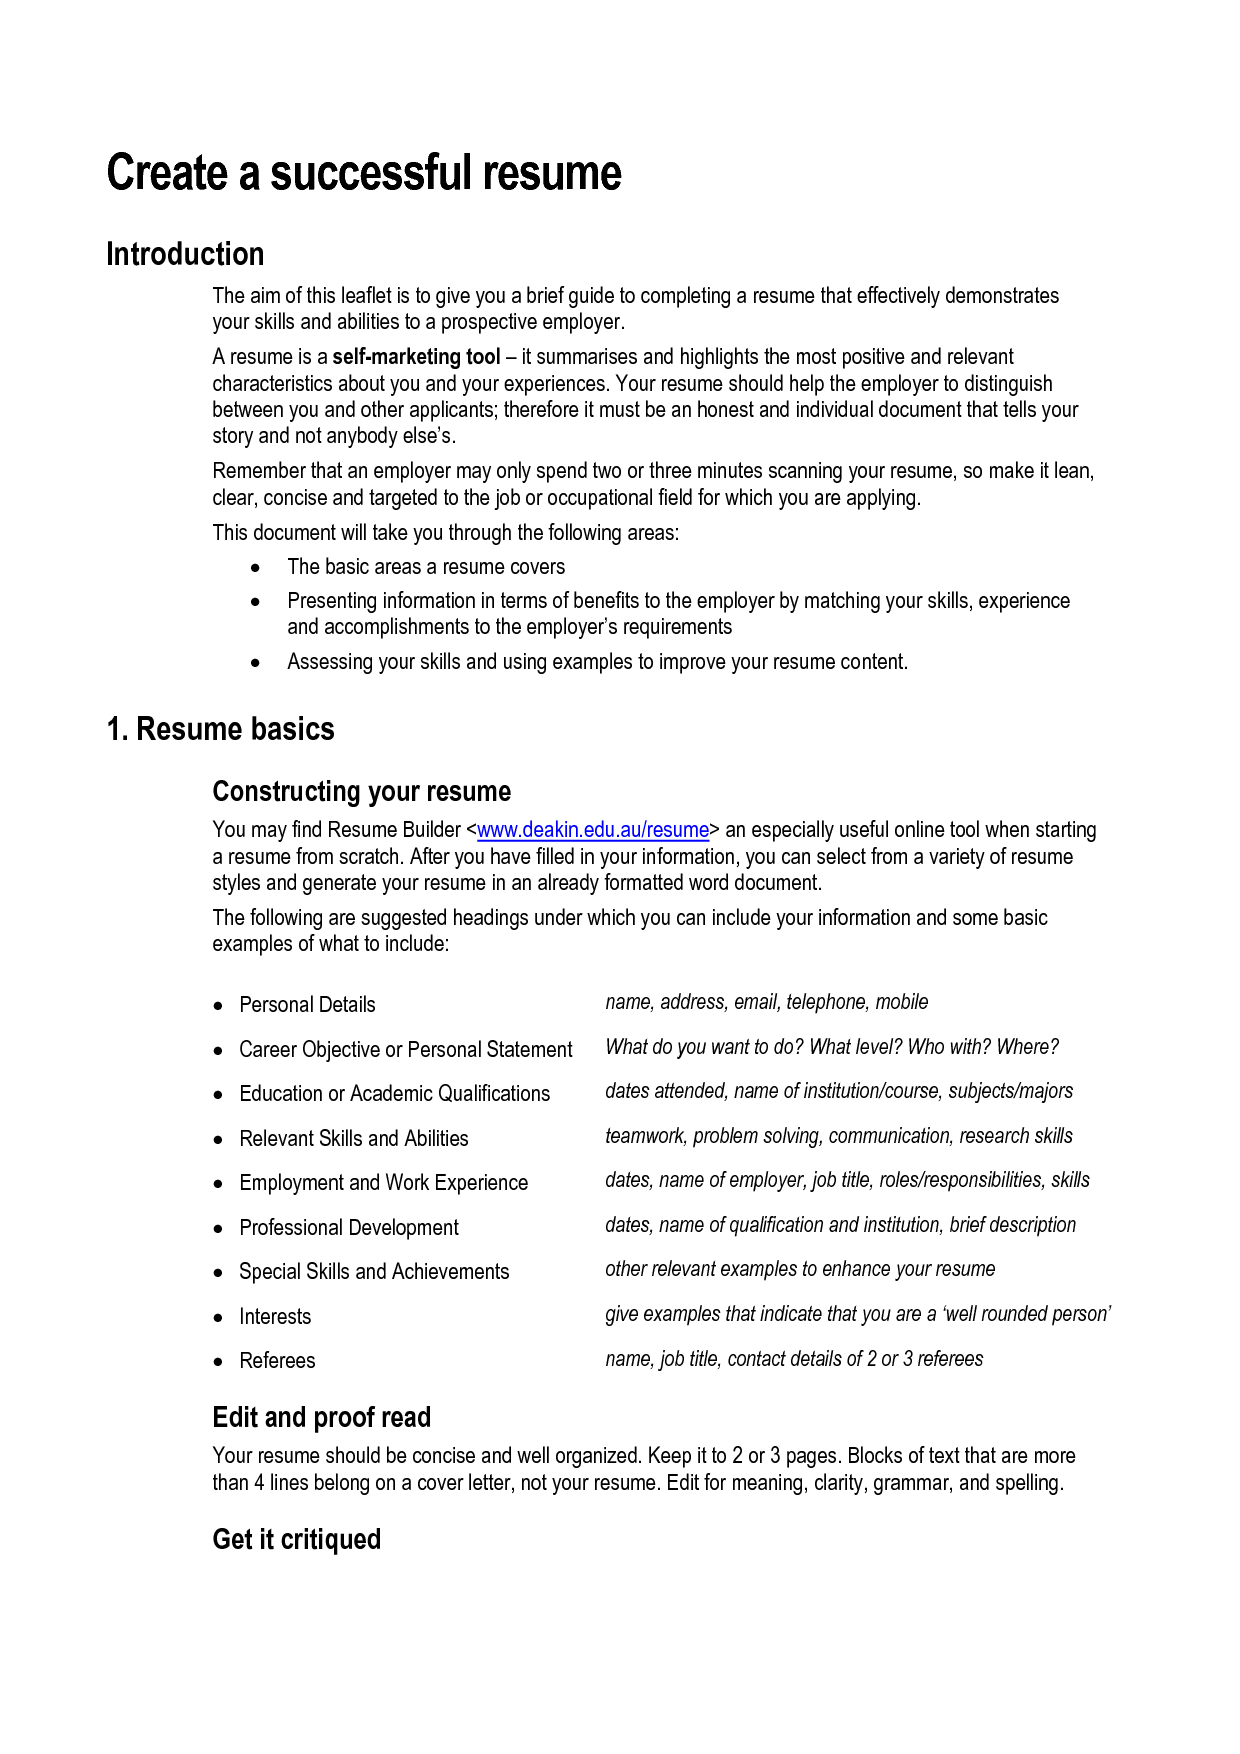 Resume Skills And Ability  How to Create a Resume  DOC  resumes  Pinterest  Resume skills